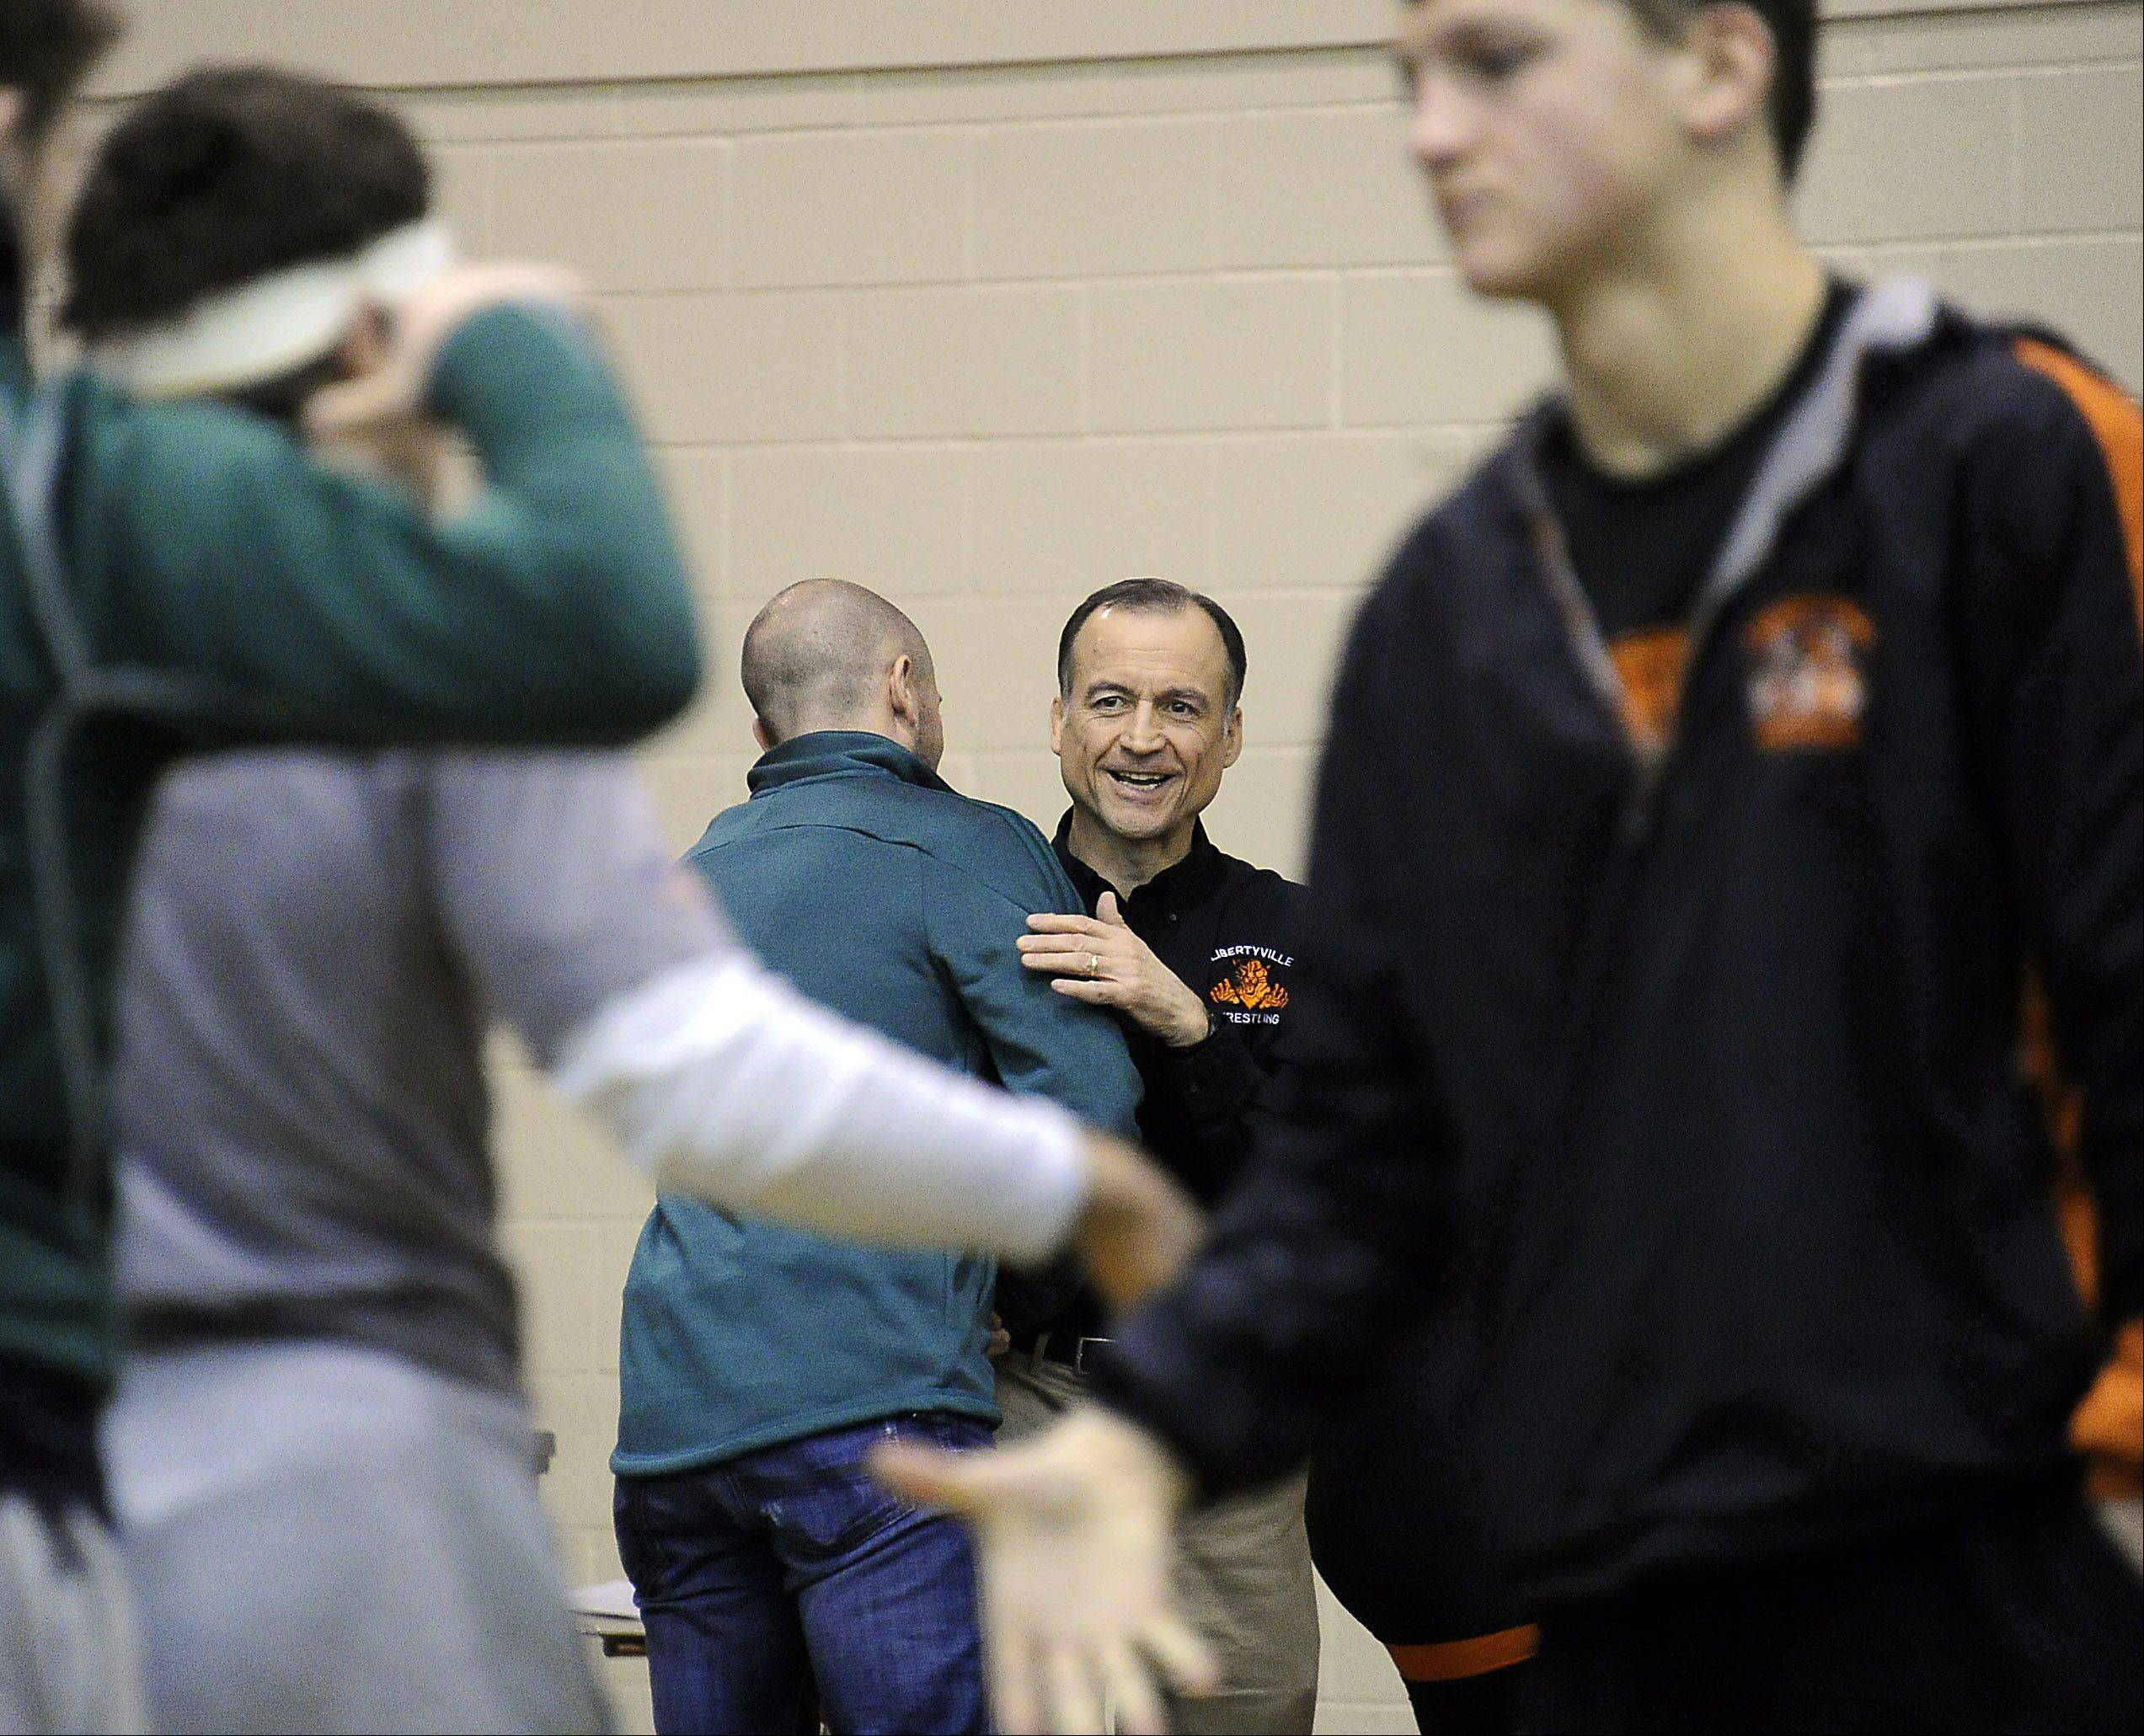 Libertyville wrestling coach Dale Eggert is congratulated by the coaching staff of Crystal Lake South. Eggert reached win number 500 on Saturday.